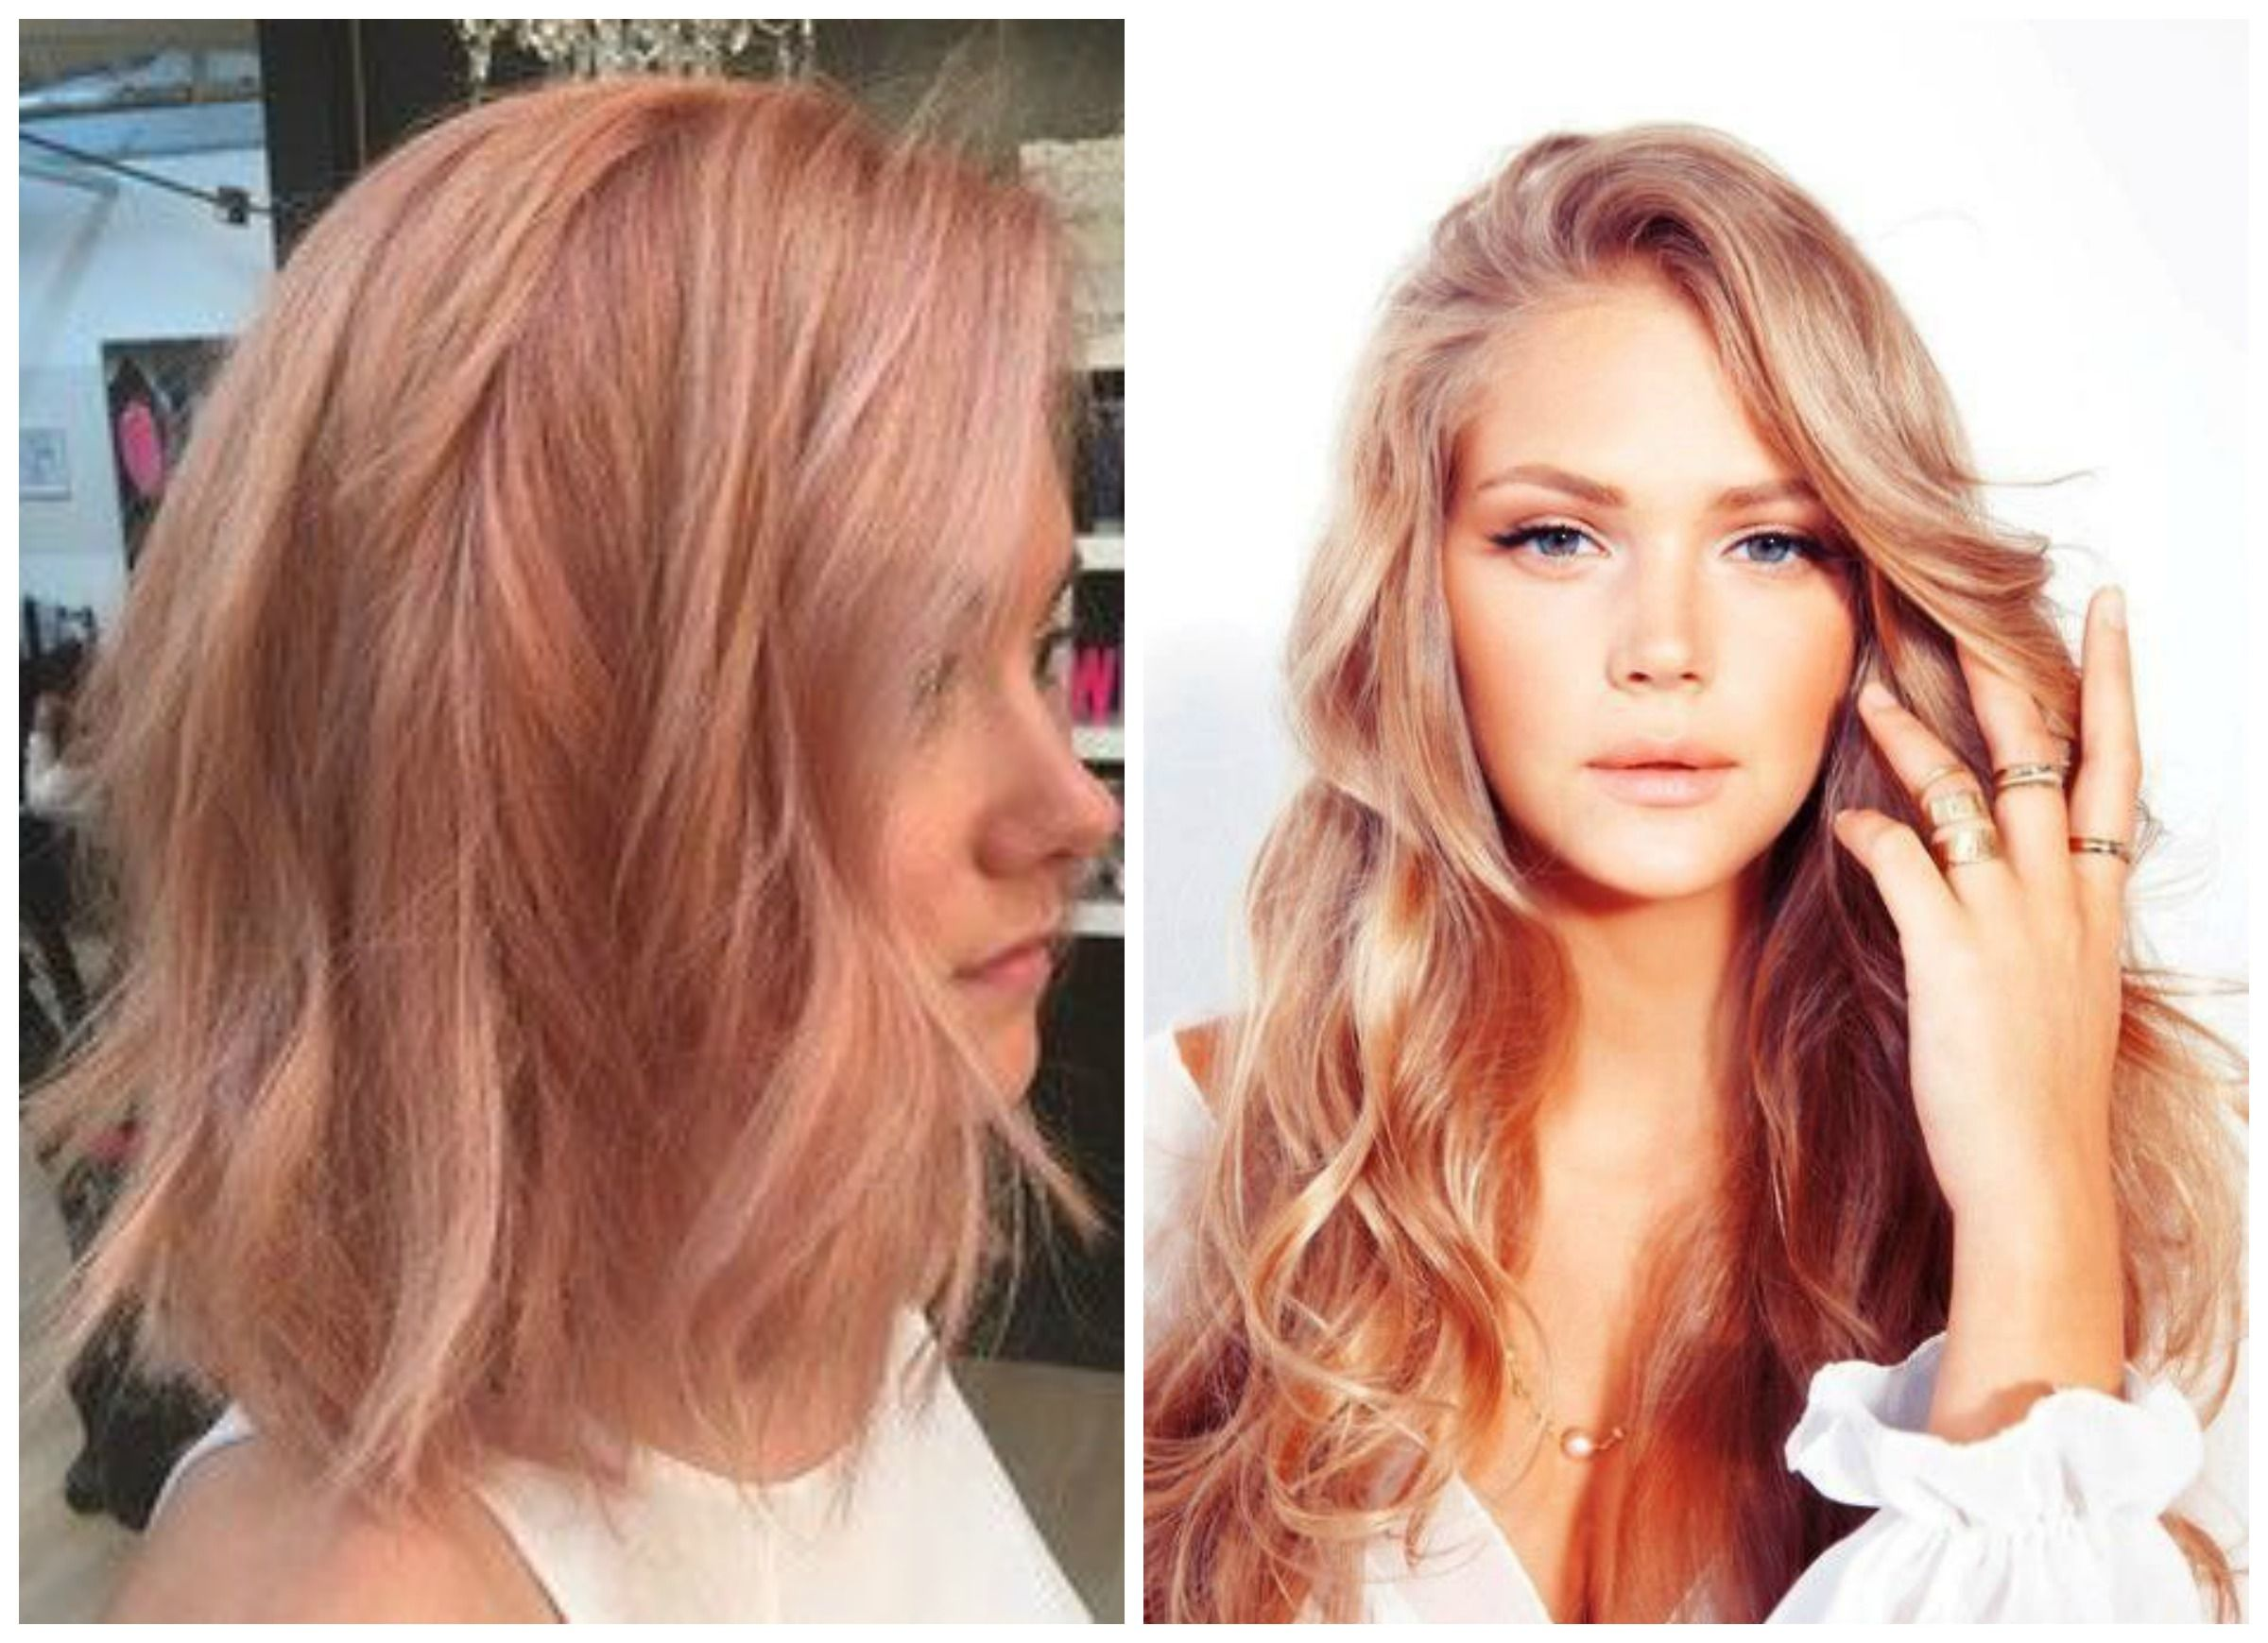 People Are Calling This New Hair Color Trend Blorange But We Think There S Probably A Better Name For It Maybe Peach Rose Gold Even